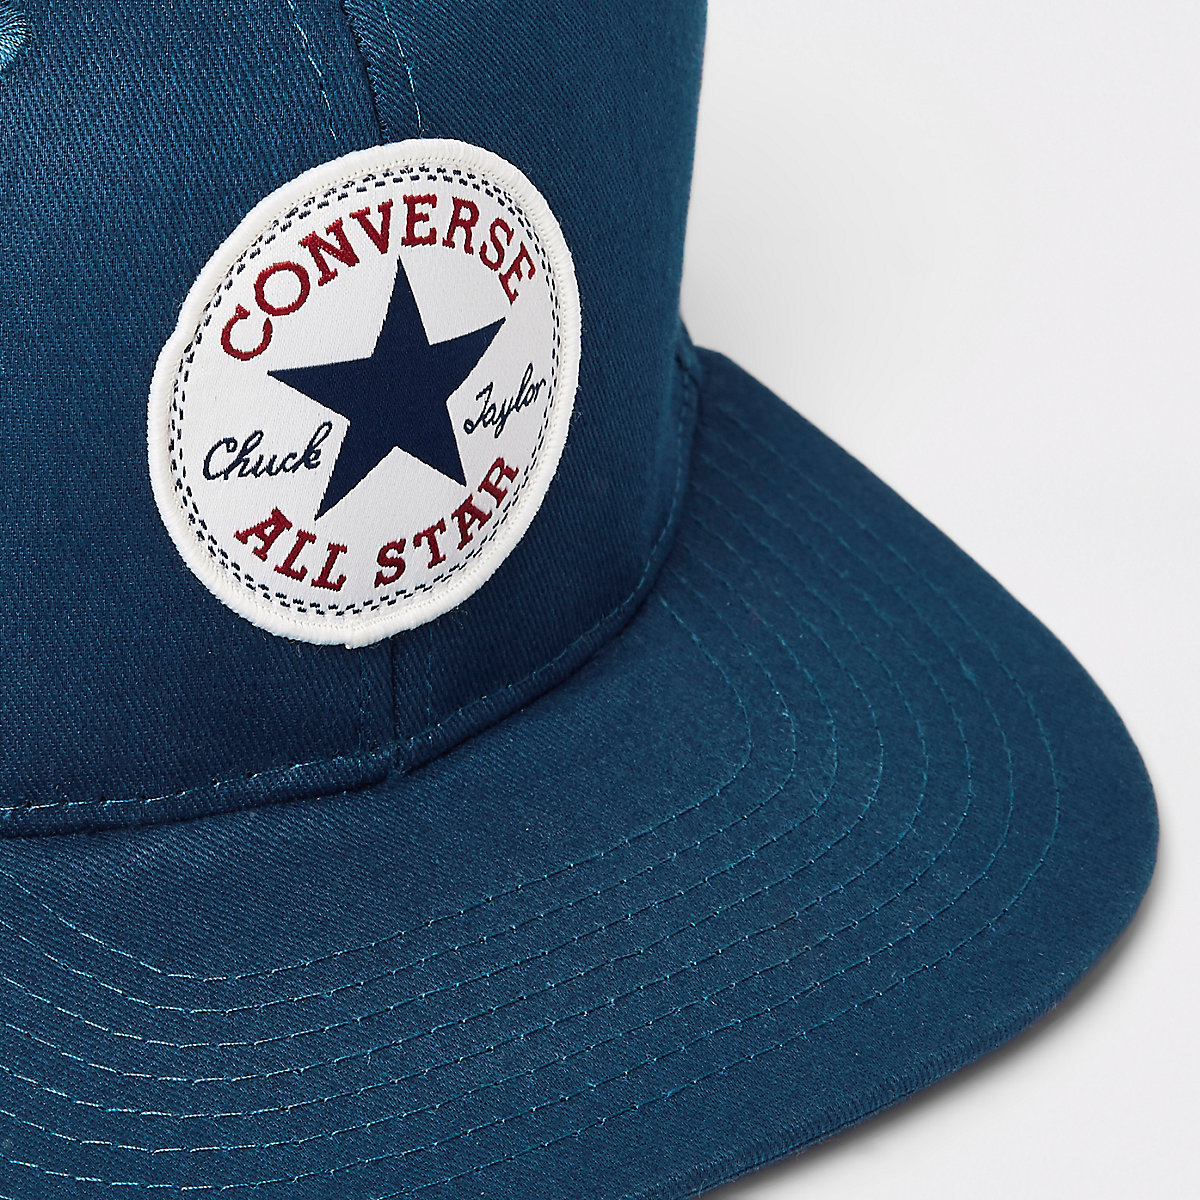 Boys Converse navy flat peak cap - Hats - Accessories - boys 7b310de8366